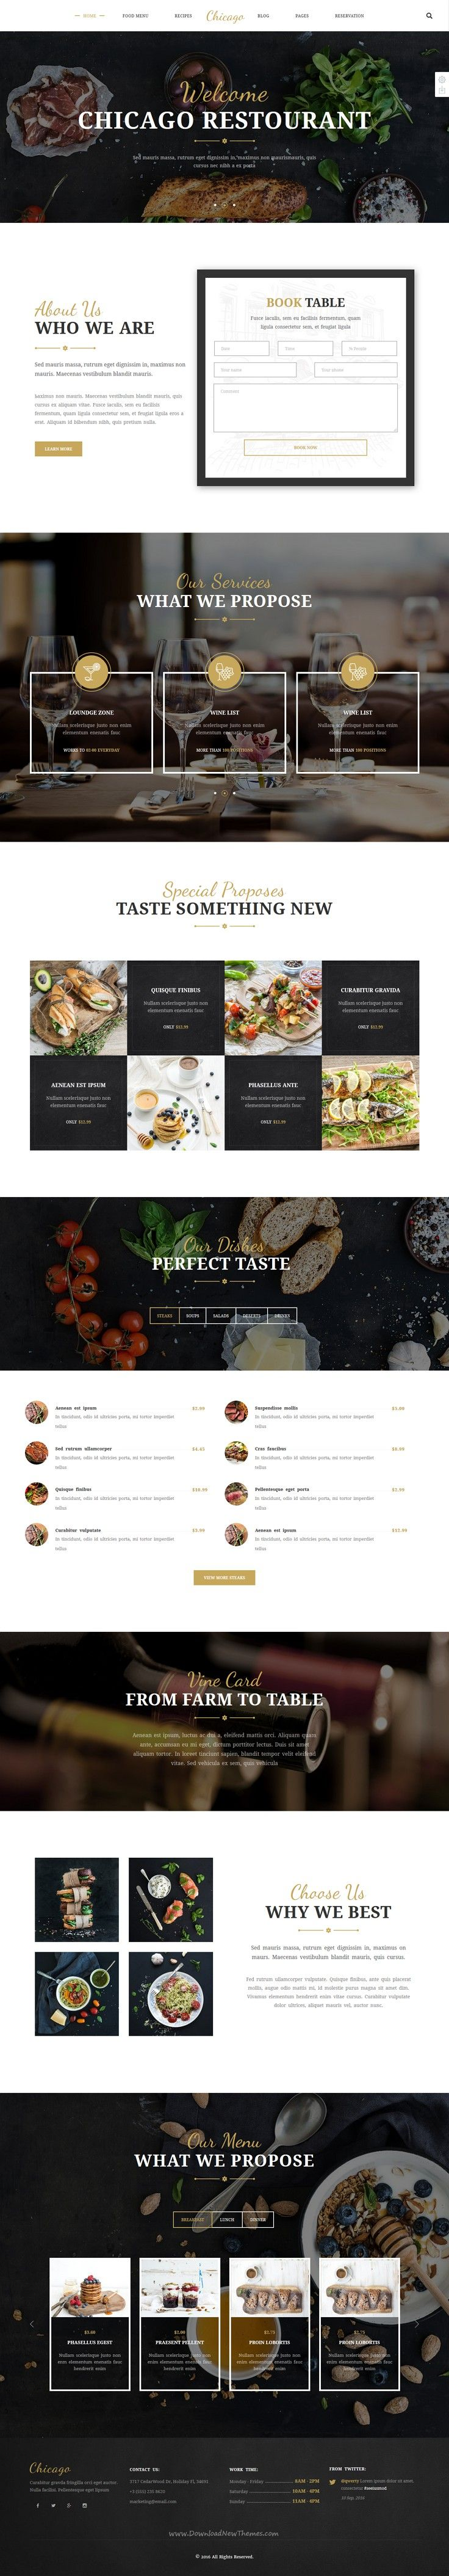 Buy Chicago Multi Purpose HTMLCSS Restaurant Template